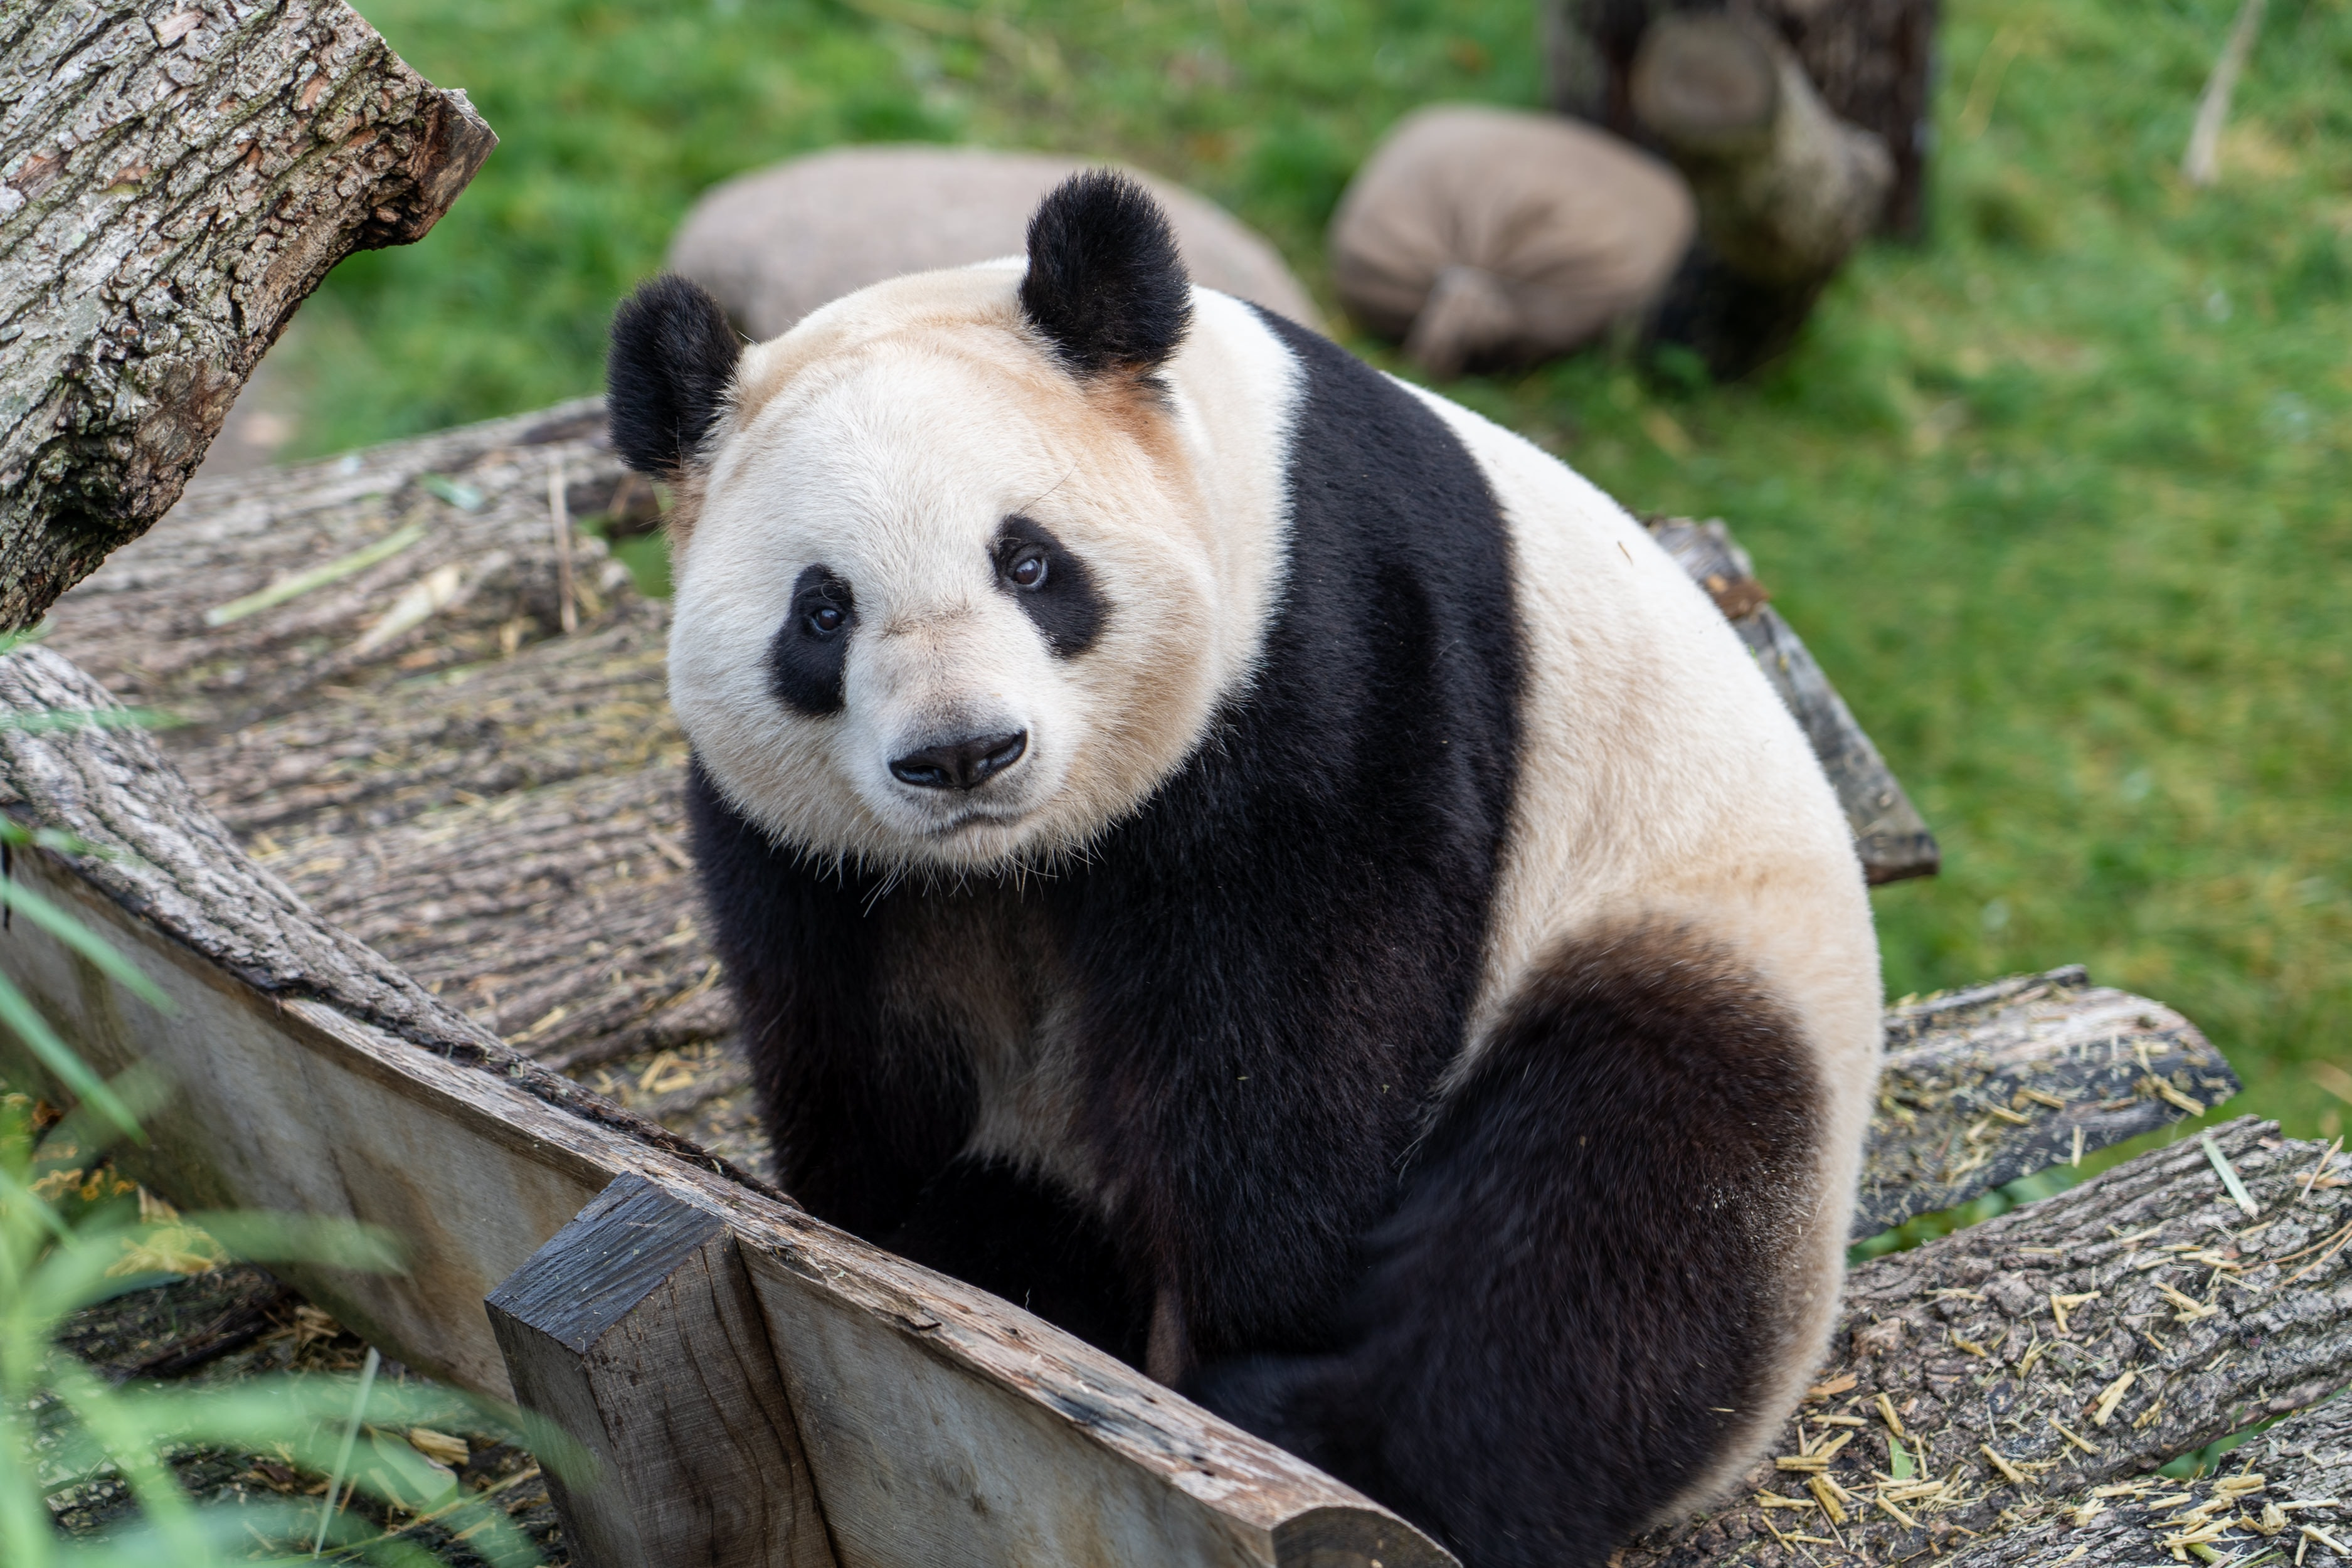 91577 download wallpaper Animals, Panda, Bear, Sight, Opinion, Animal screensavers and pictures for free